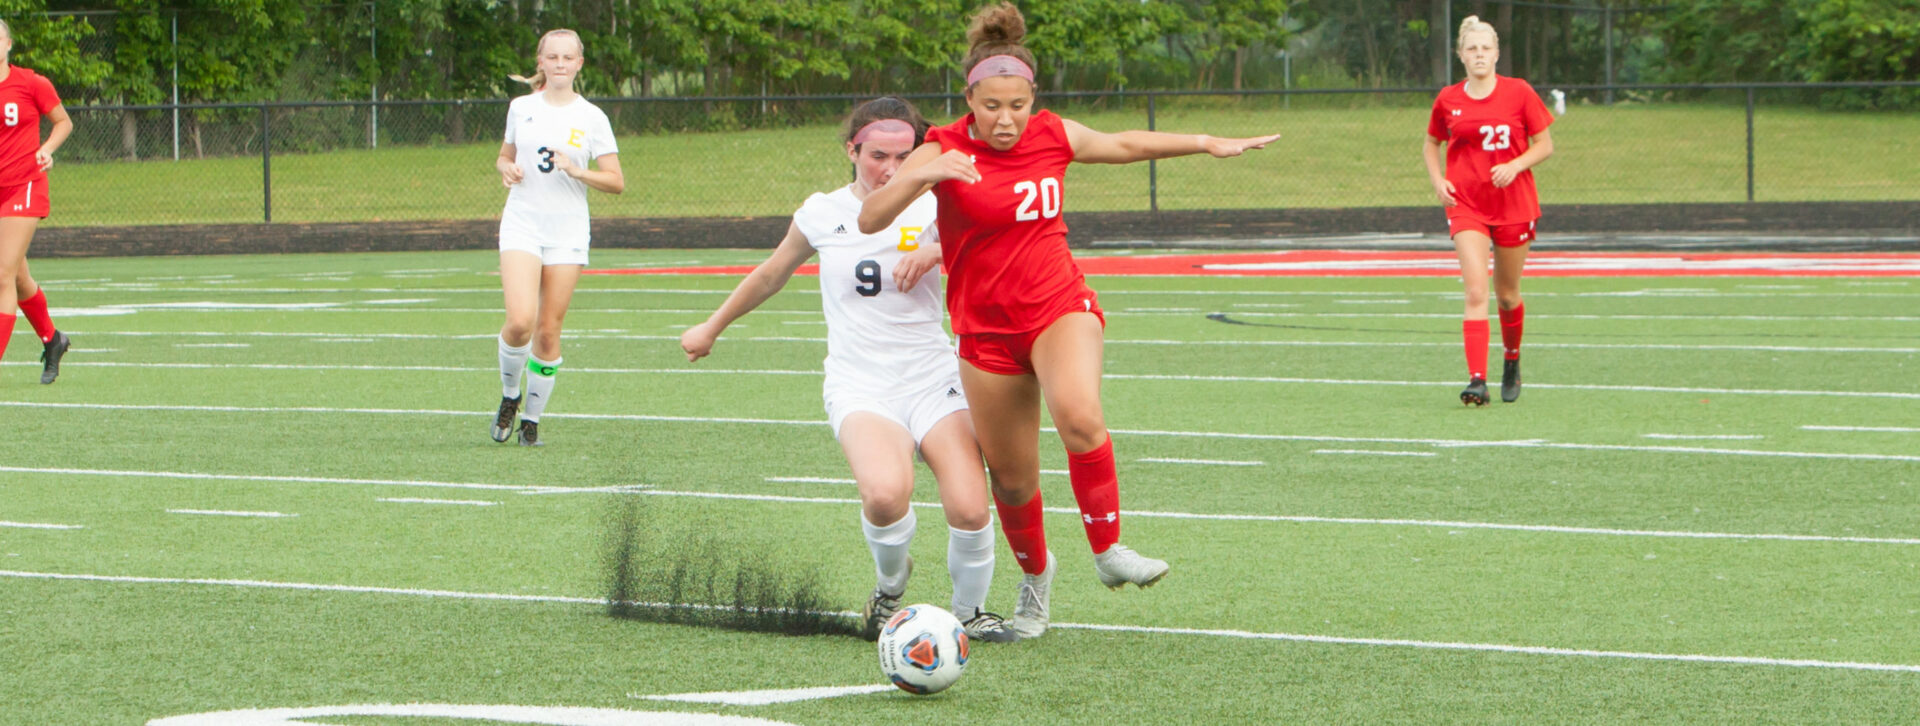 Spring Lake girls soccer team takes advantage of opportunities, beats East Grand Rapids 4-1 in Division 2 regionals